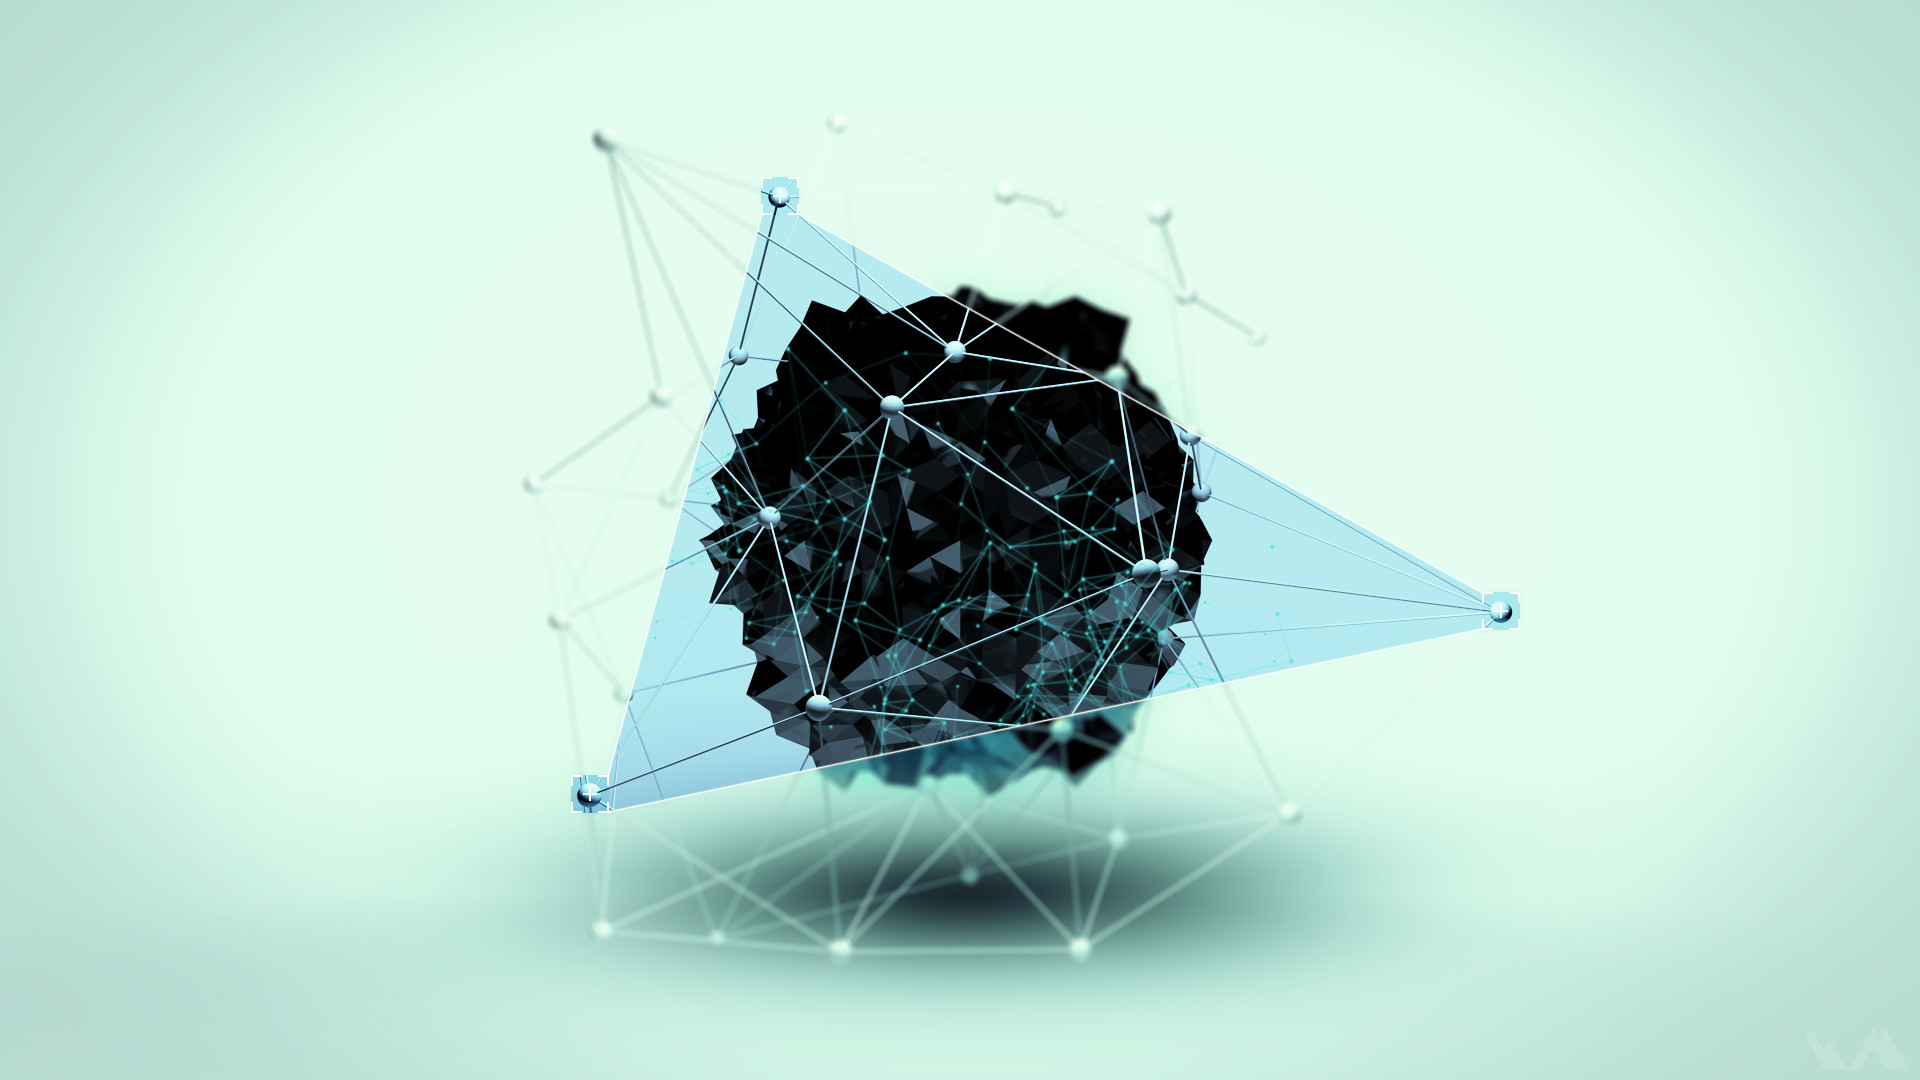 Abstract Digital Art Geometry Shapes Simple Background Triangles